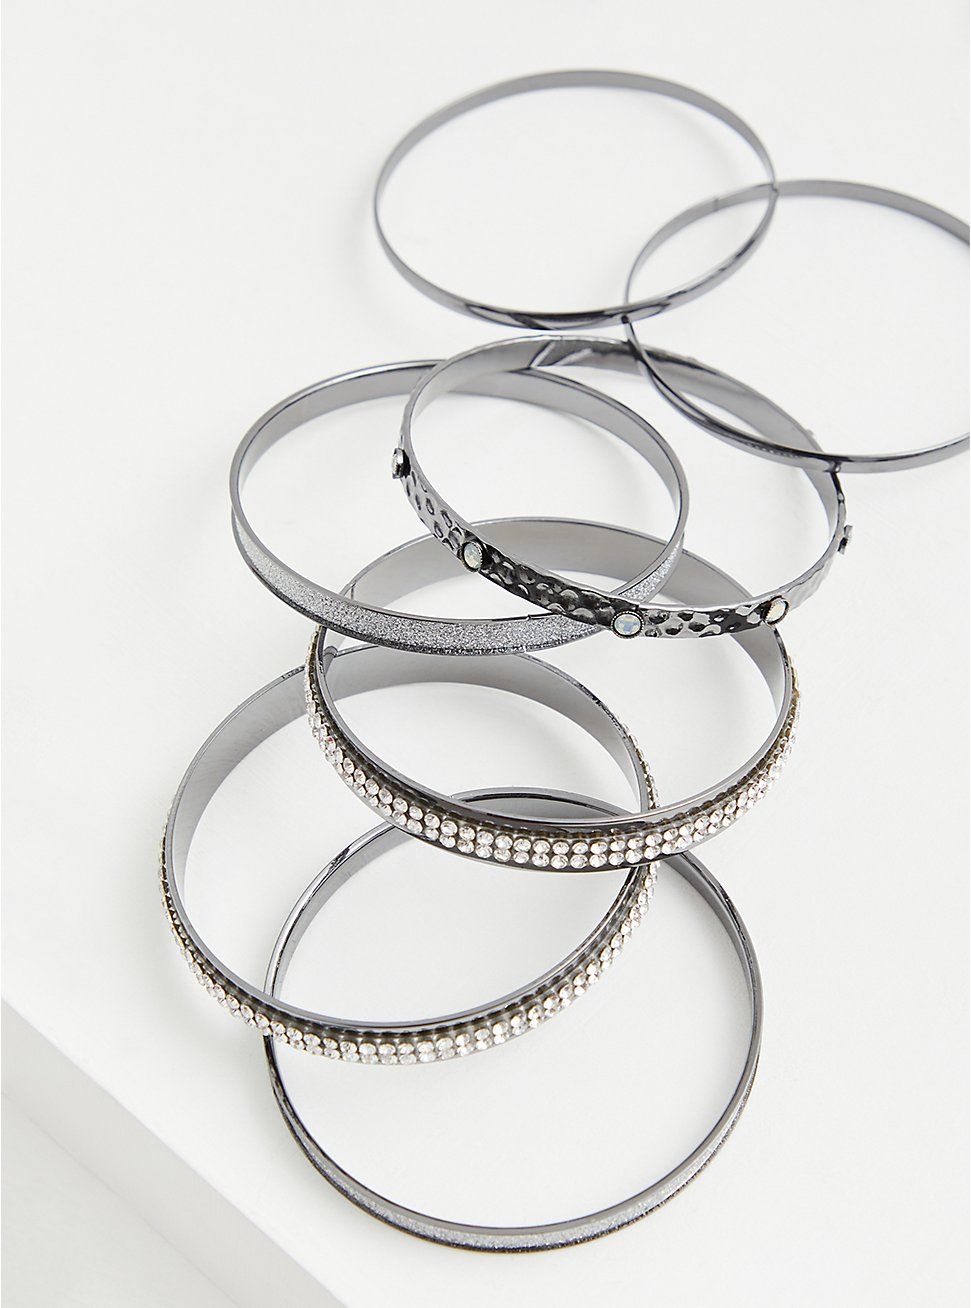 Hematite-Tone Rhinestone Bangle Set - Set of 7, HEMATITE, hi-res